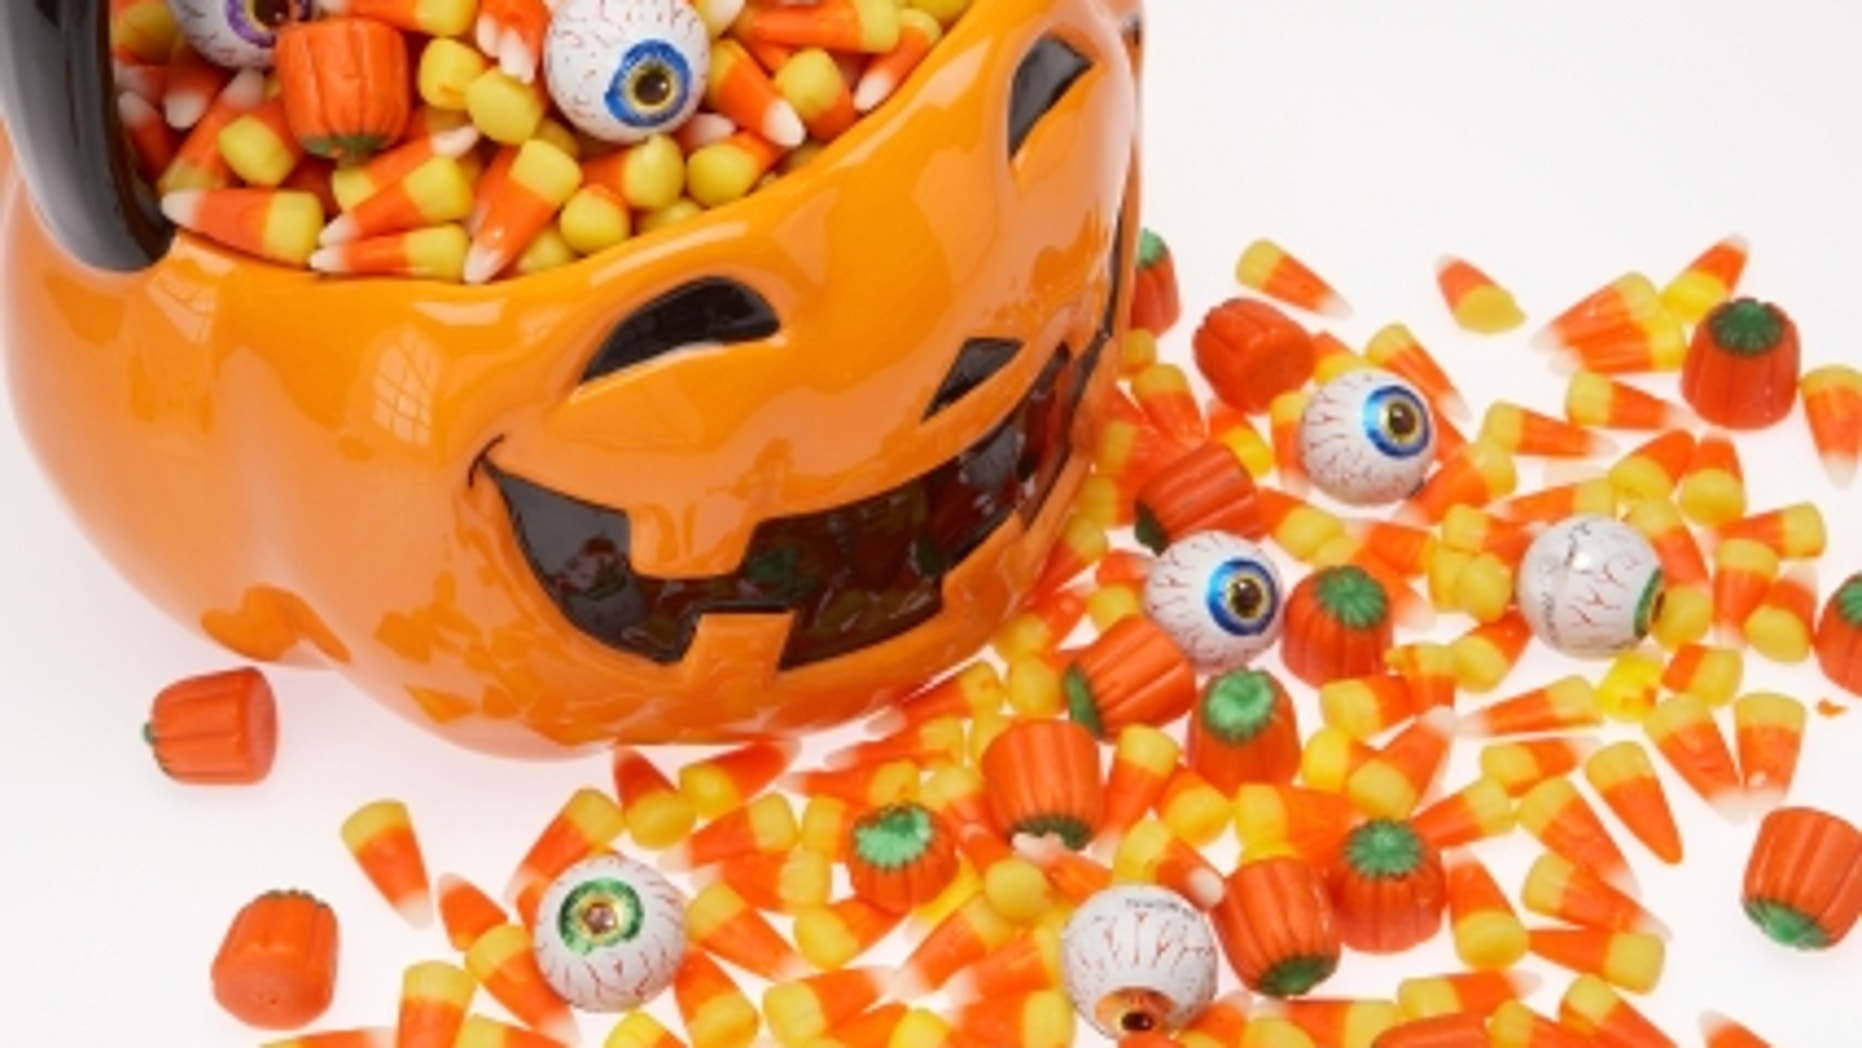 dentists offering cash for halloween candy to benefit troops | fox news